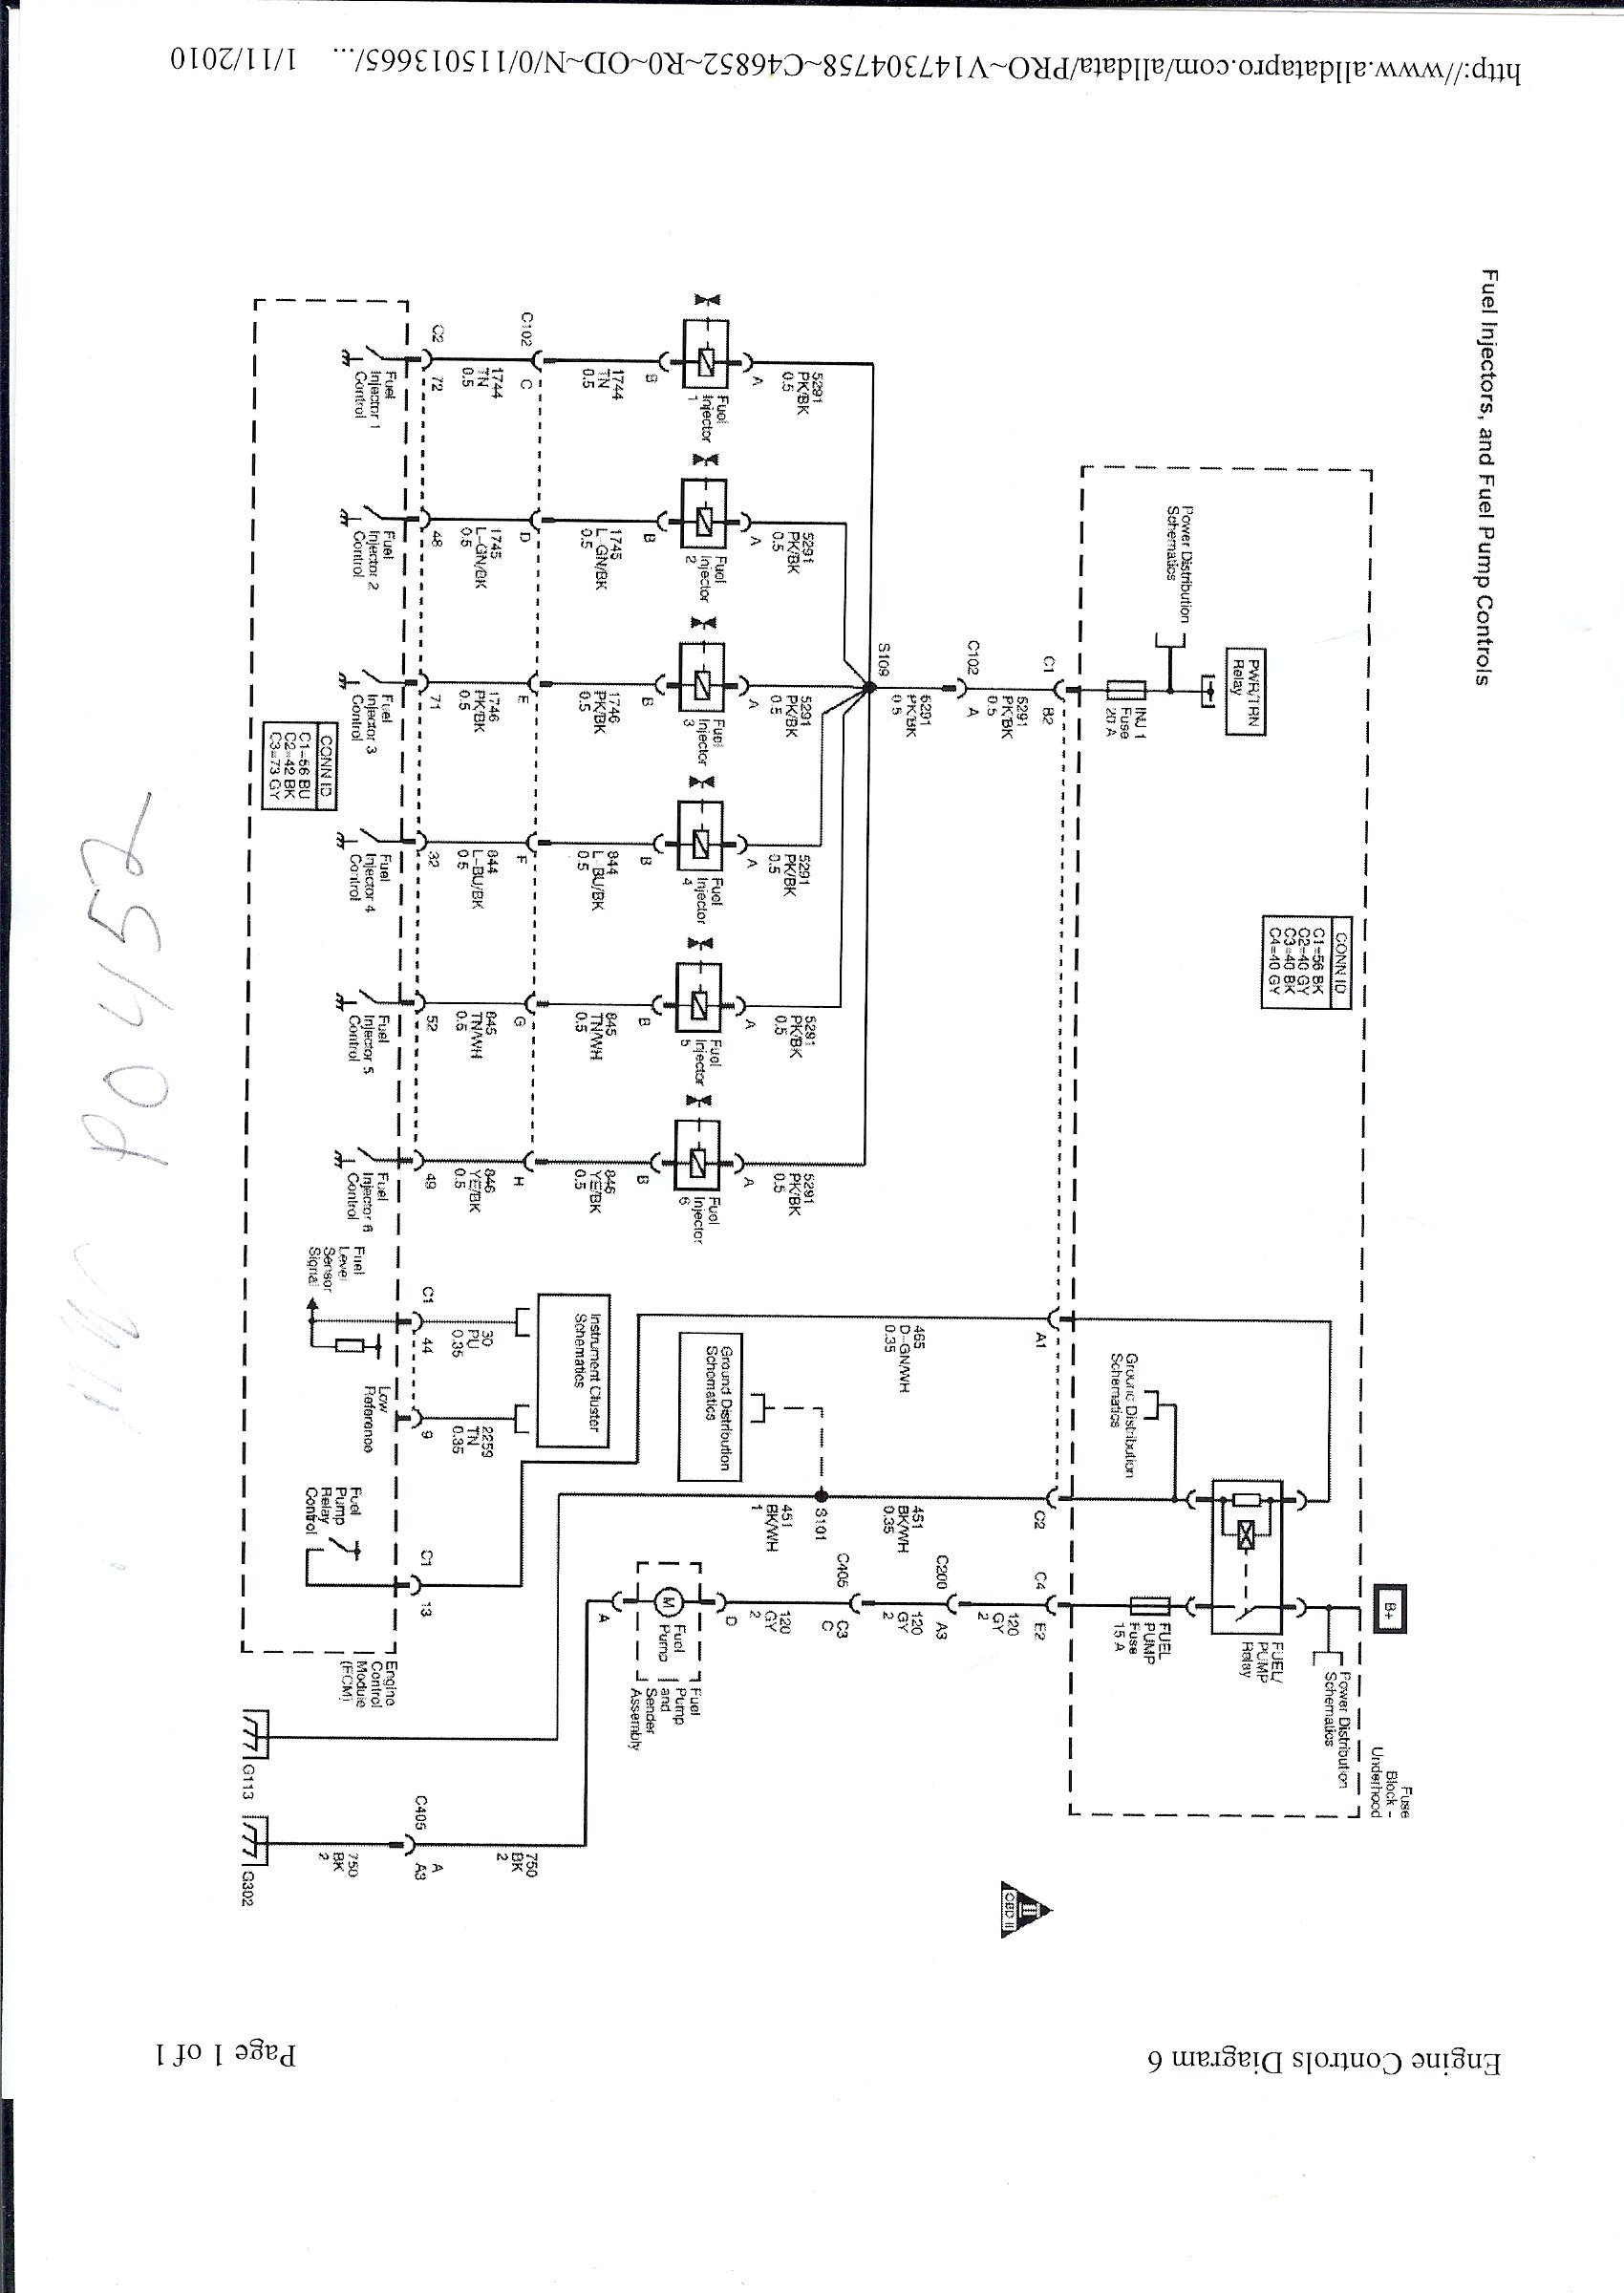 2010 01 13_020441_wiring_diagram 2006 chevy impala fuel pump went out replaced pump still will 2008 chevy silverado fuel pump wiring diagram at pacquiaovsvargaslive.co